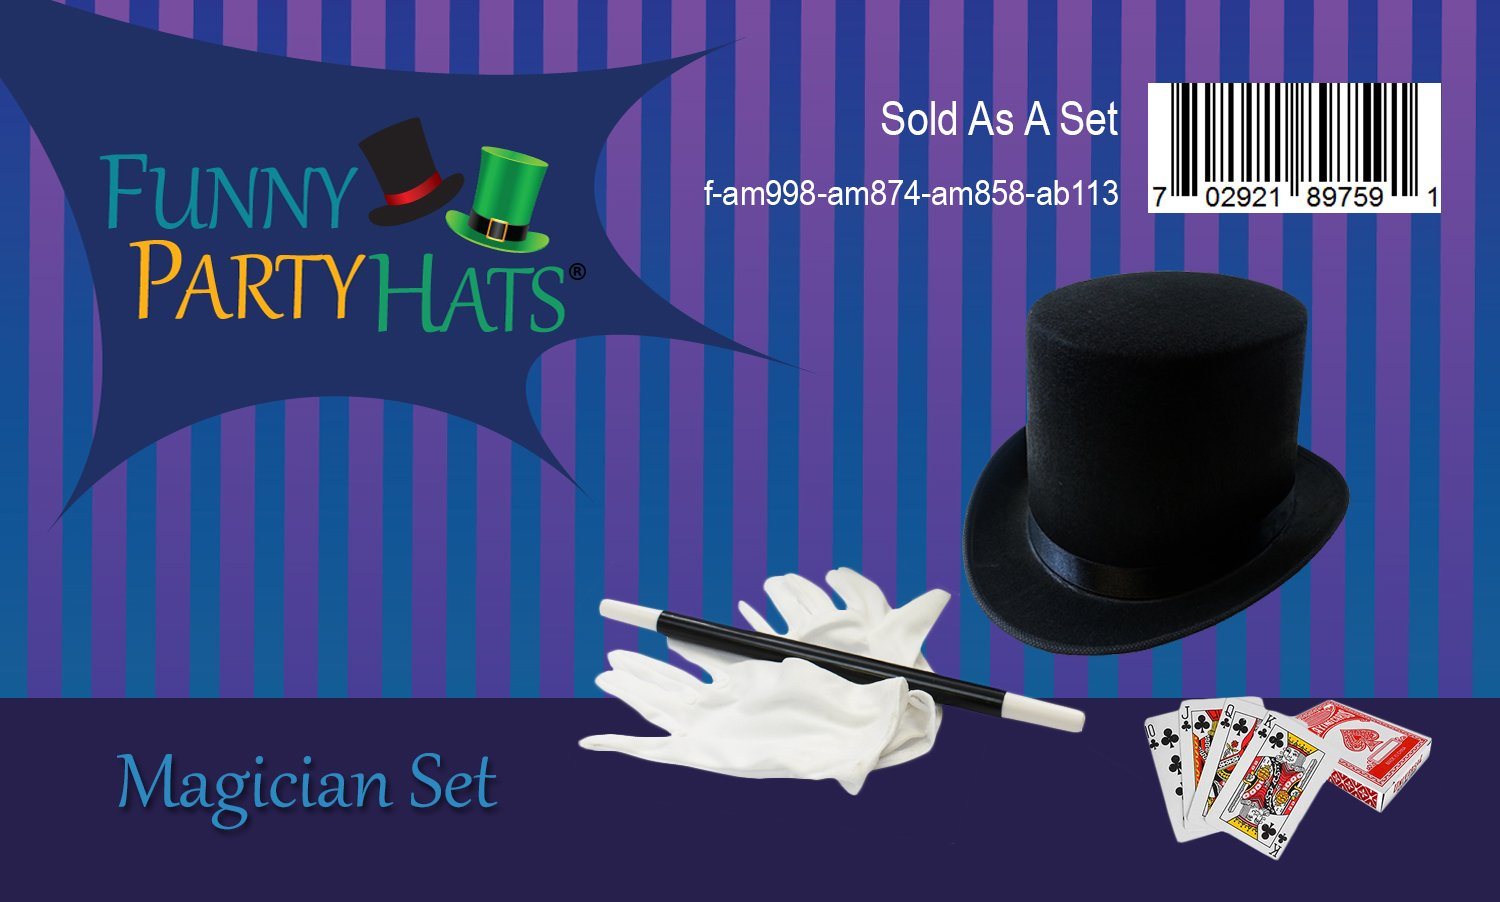 Magician Costume - 4 Pc Set, Magician Hat, Wand , Gloves & Bonus Cards - Magician Kit for Kids Funny Party Hats by Funny Party Hats (Image #6)